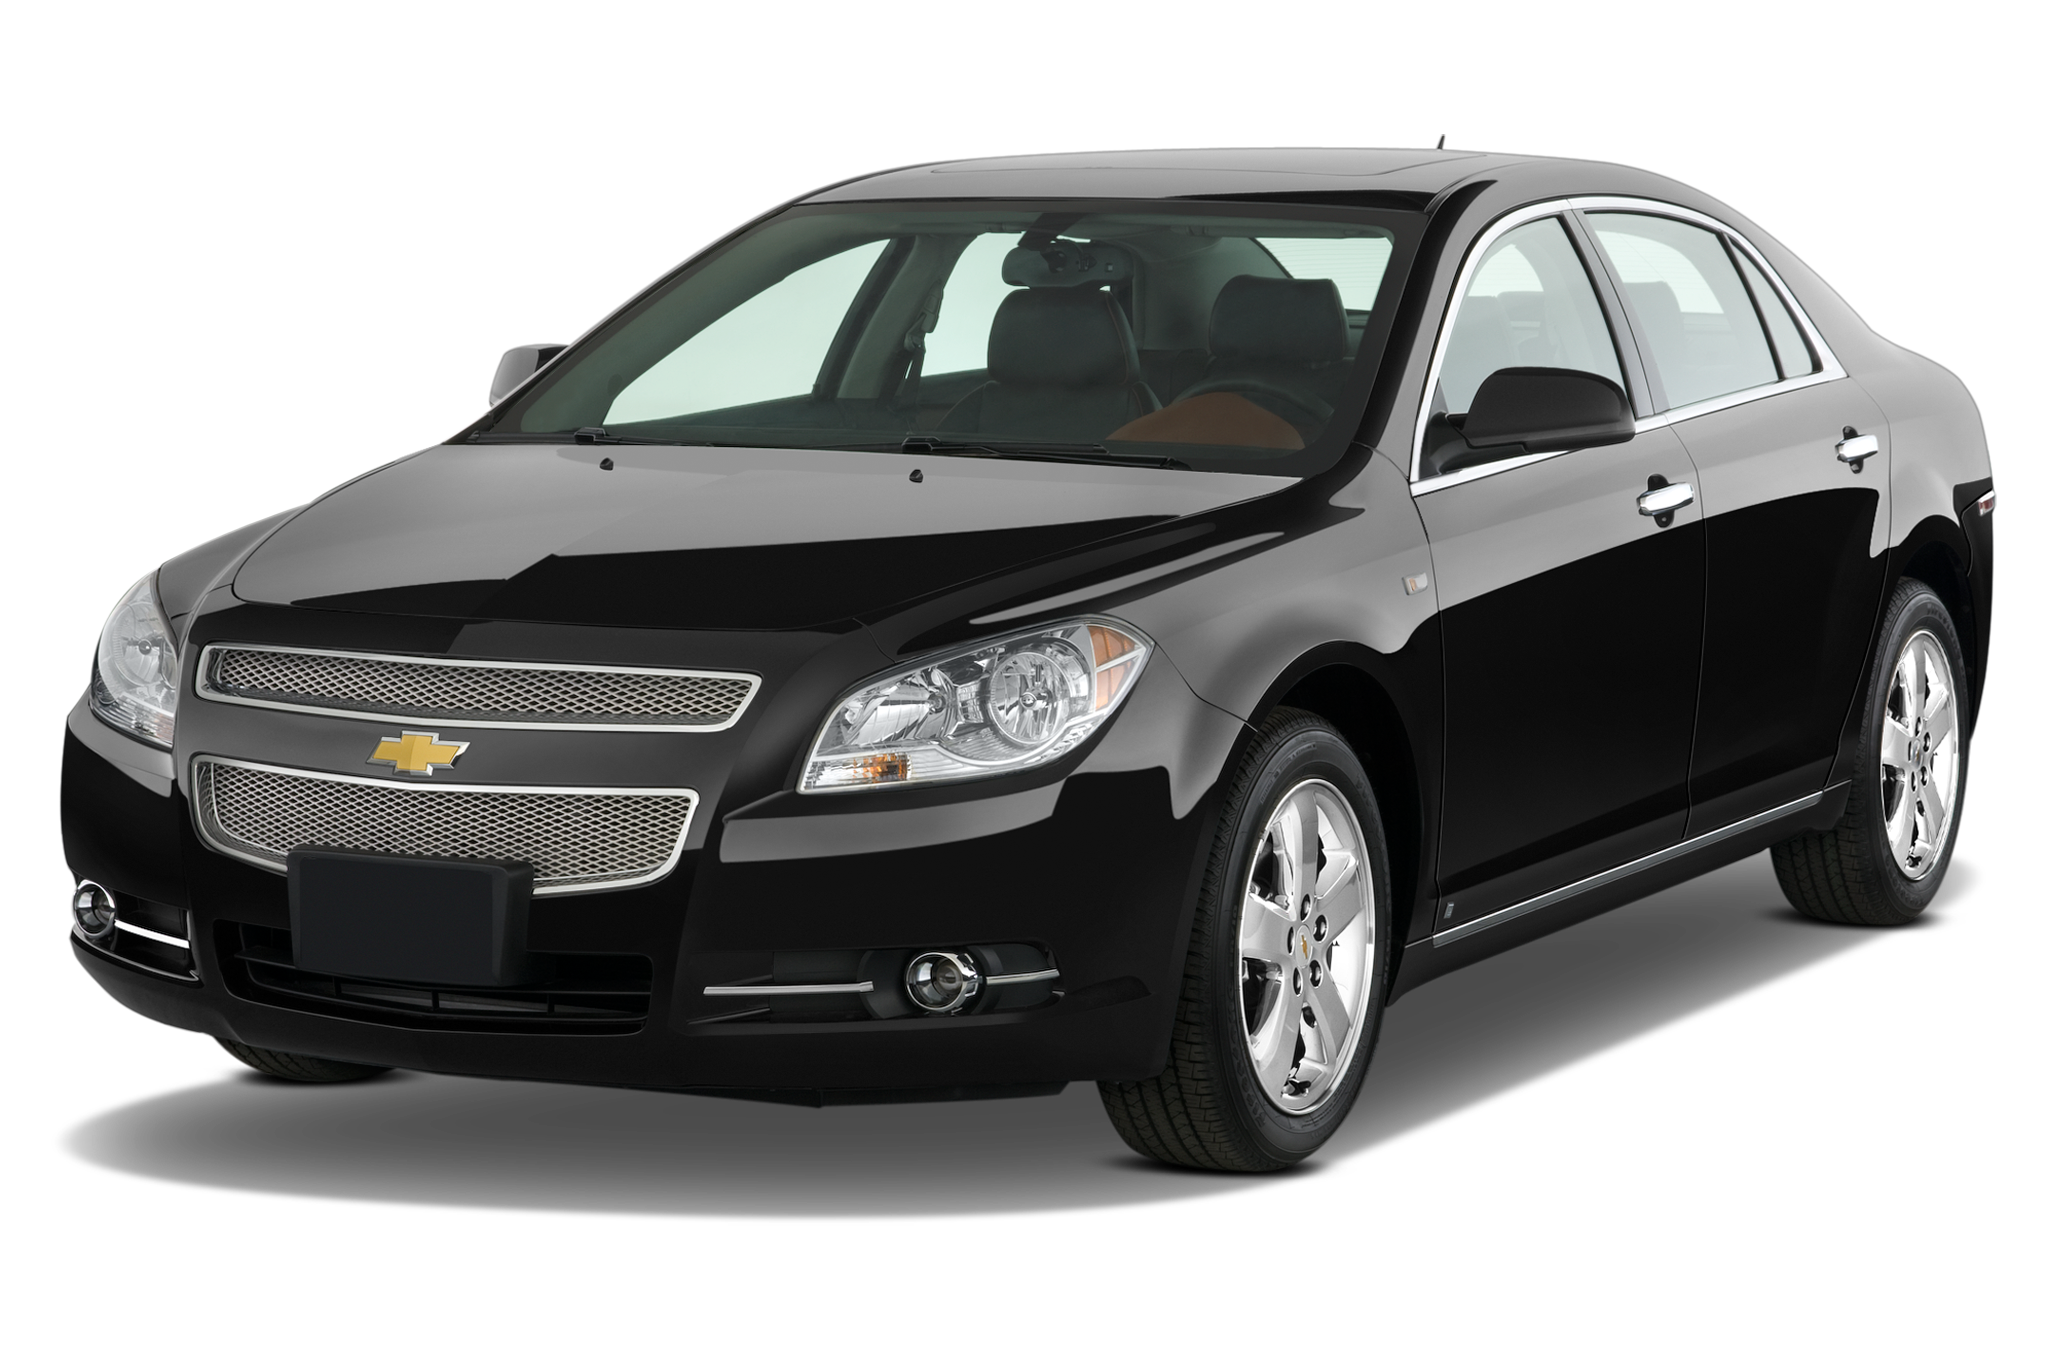 2010 chevrolet malibu ltz automobile magazine. Black Bedroom Furniture Sets. Home Design Ideas